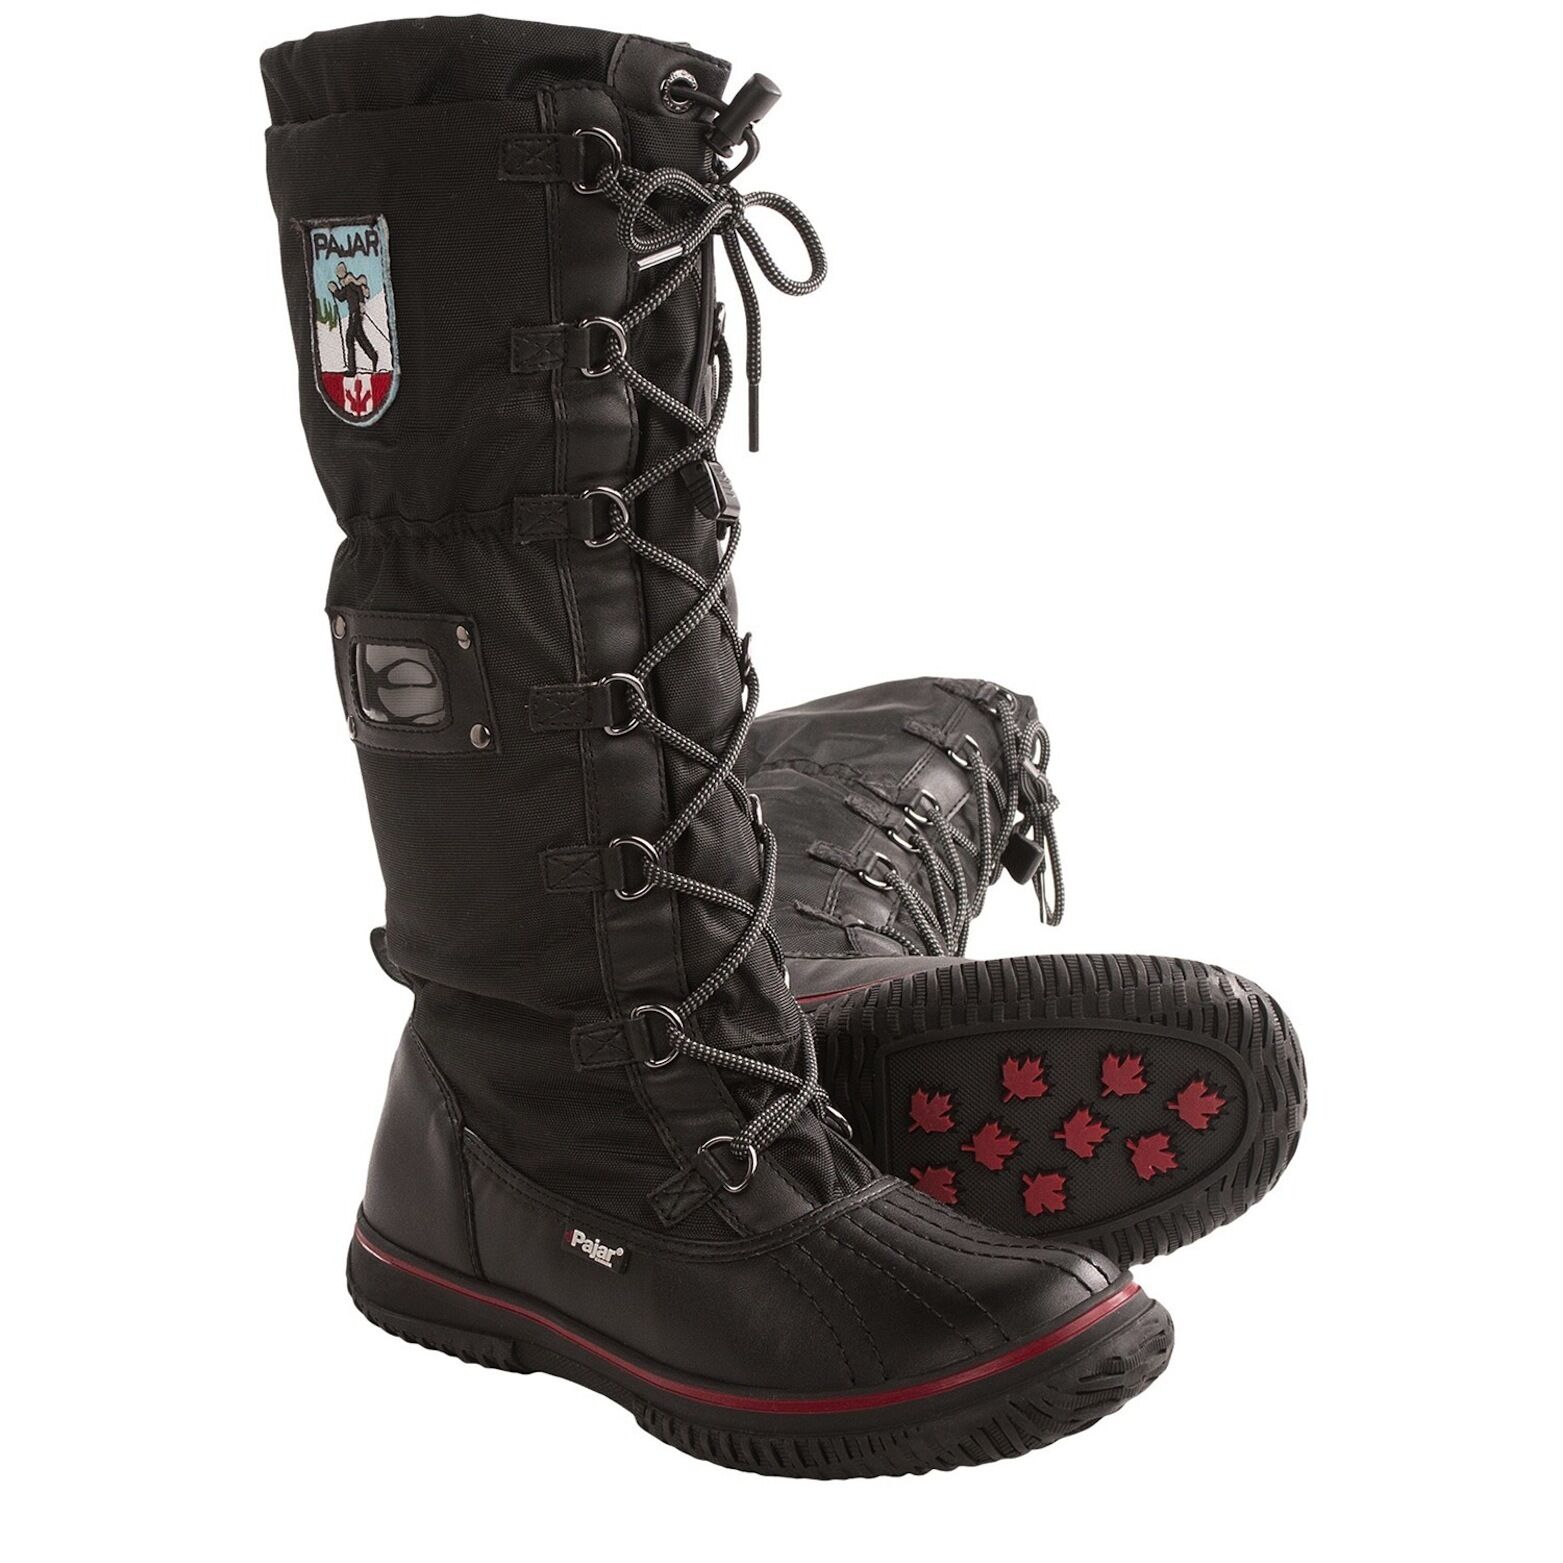 Pajar Canada Grip Boot Women's Black Red Winter Snow Sz US 8 8.5 NEW